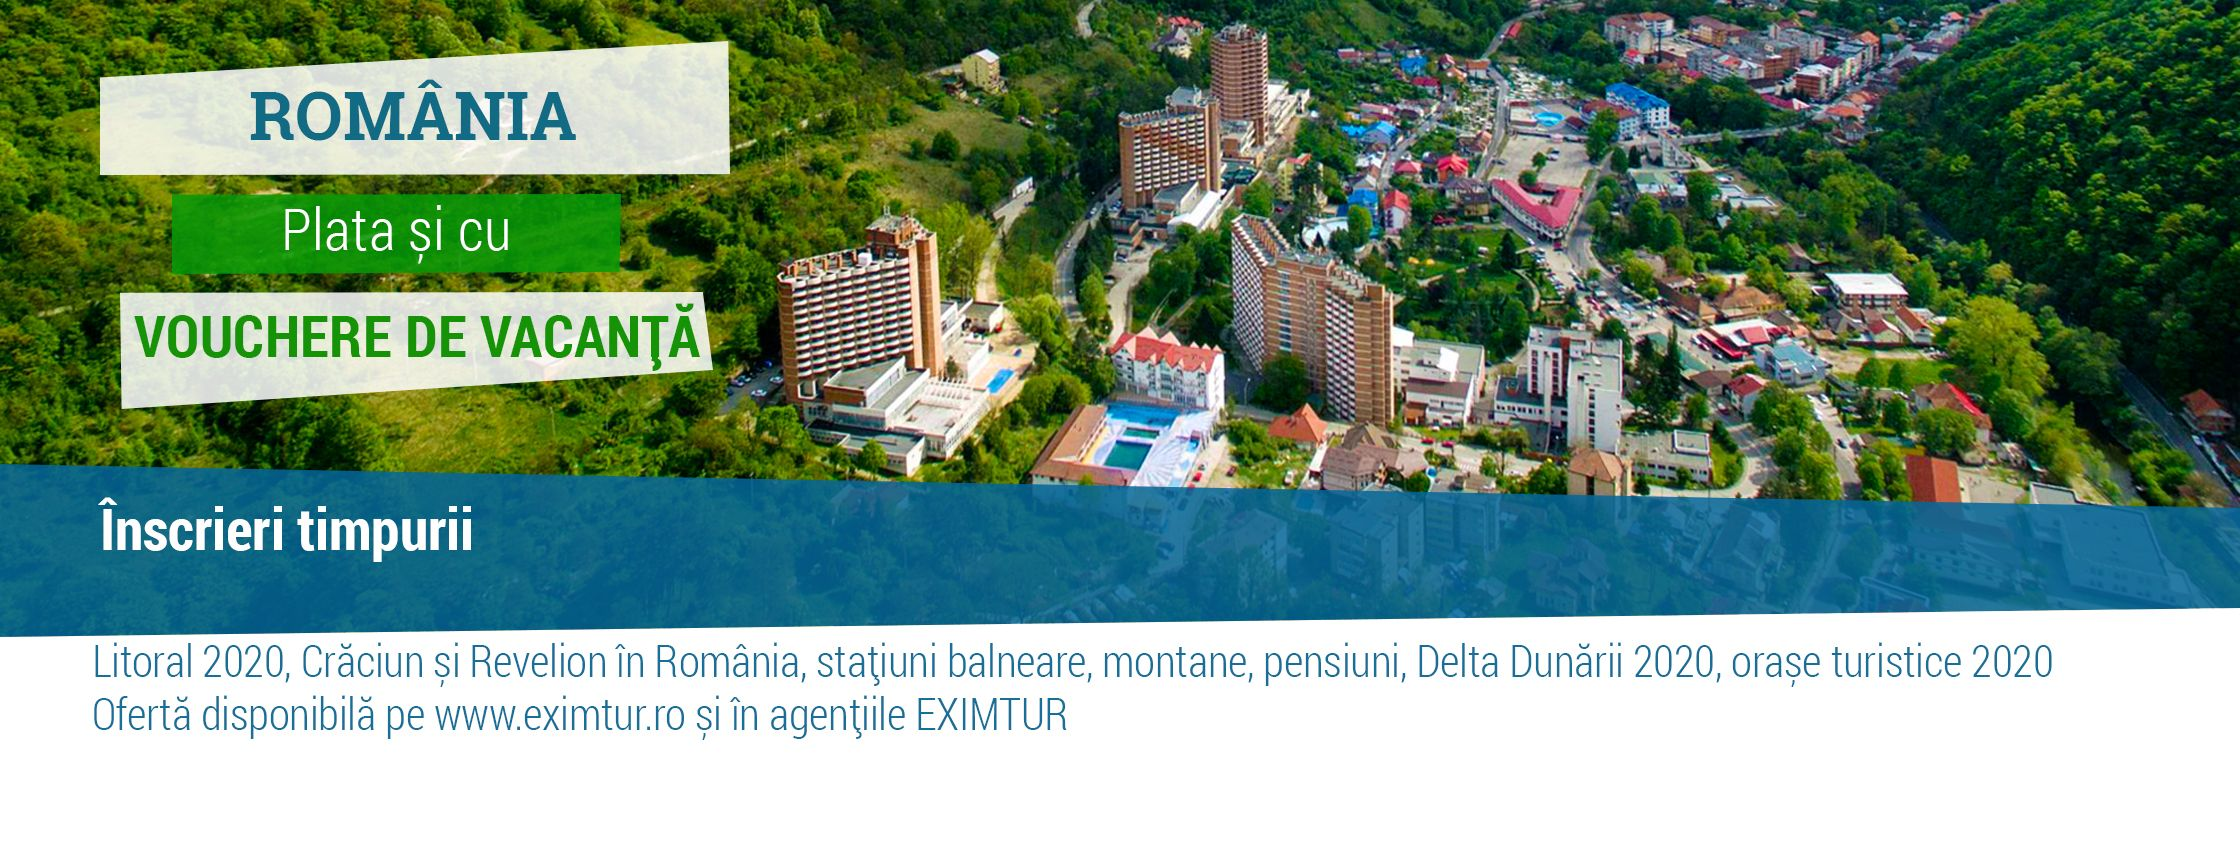 Super Early Booking - vacante interne (Romania)